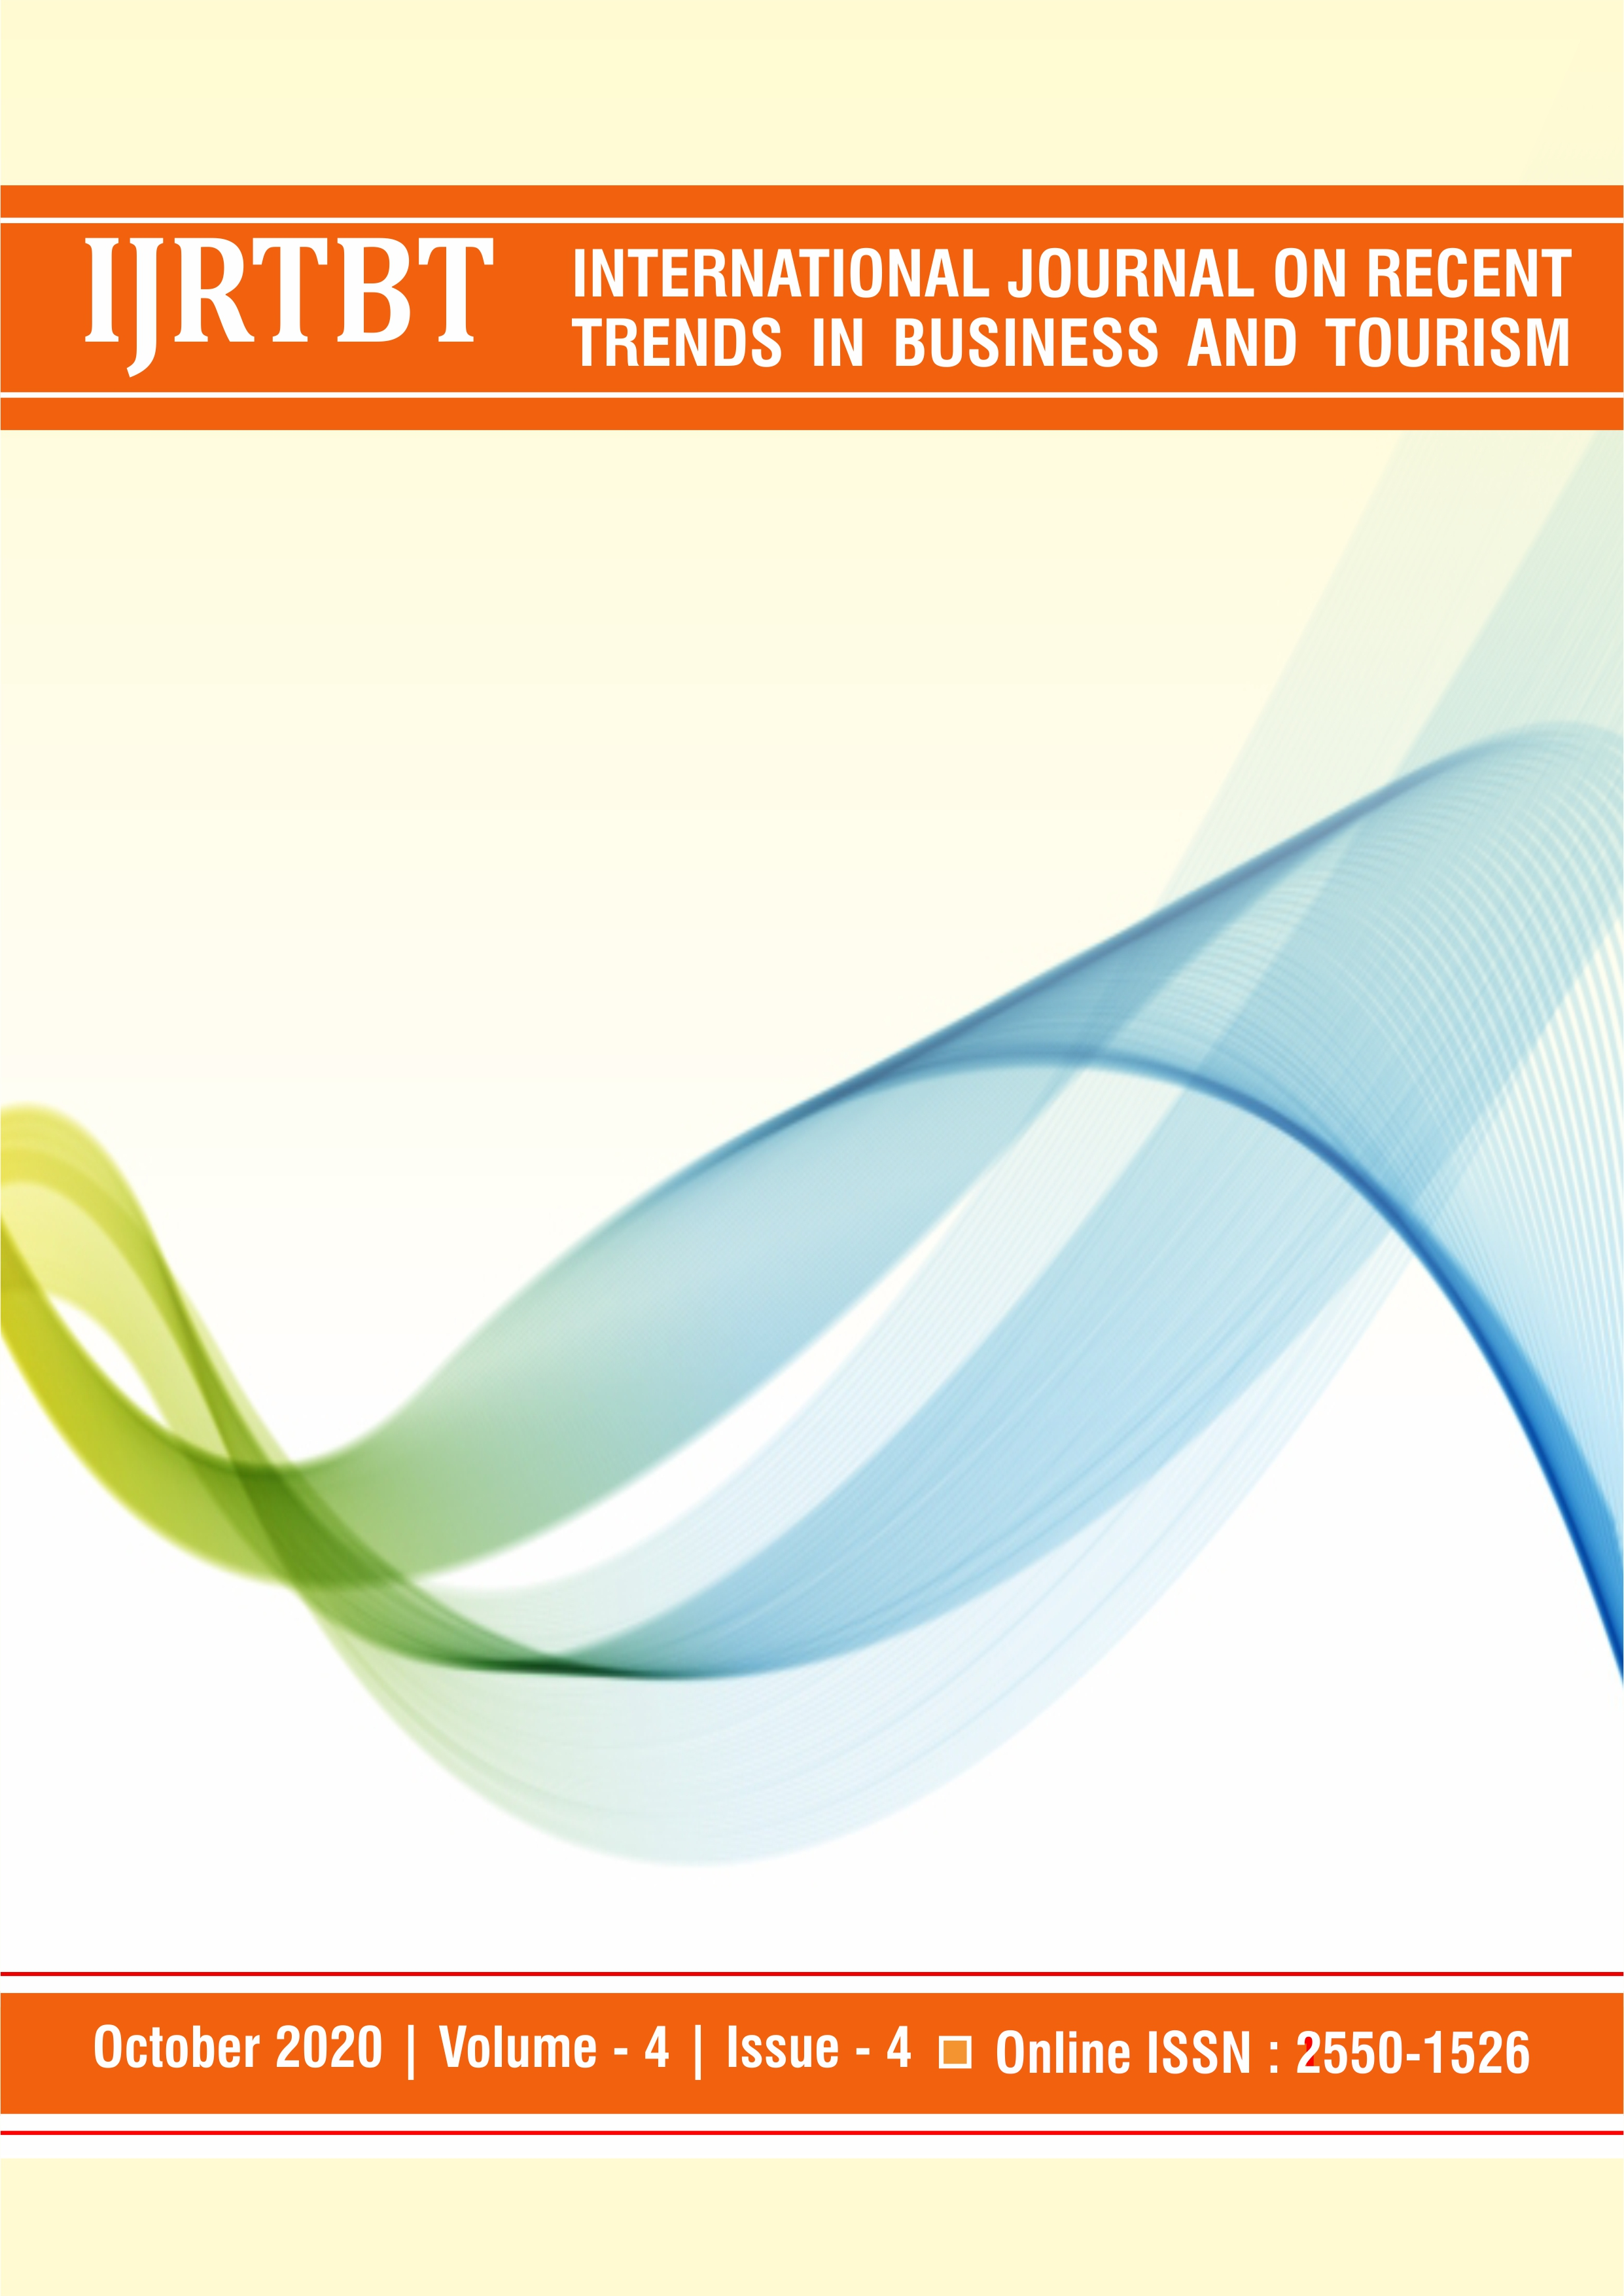 View Vol. 4 No. 4 (2020): International Journal on Recent Trends in Business and Tourism